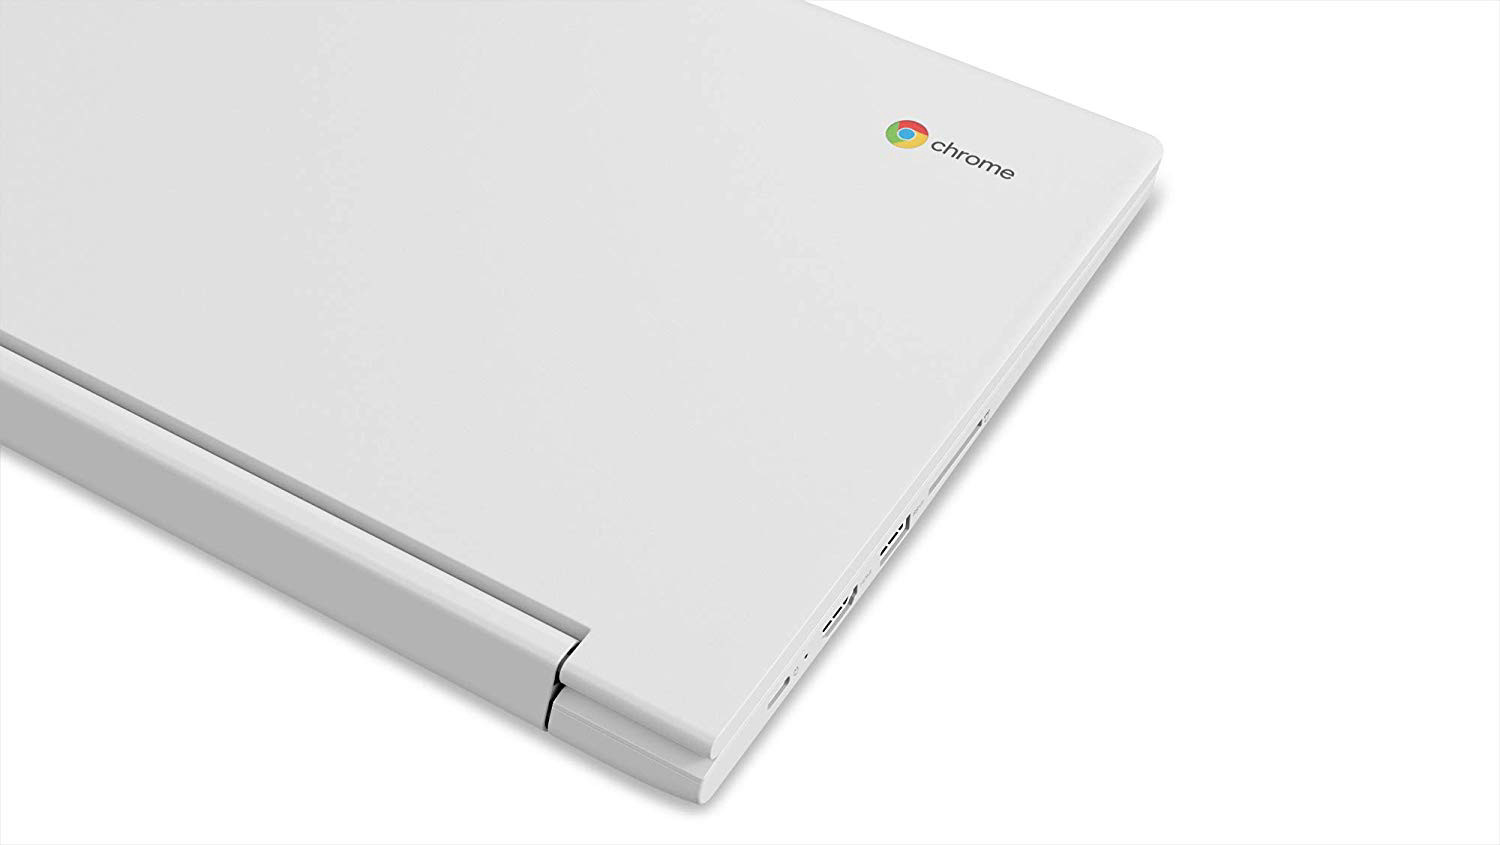 Lenovo Chromebook C330 2-in-1 Convertible Laptop, 11.6-Inch HD (1366 x 768) IPS Display, MediaTek MT8173C Processor, 4GB LPDDR3, 64 GB eMMC, Chrome OS, 81HY0000US, Blizzard White